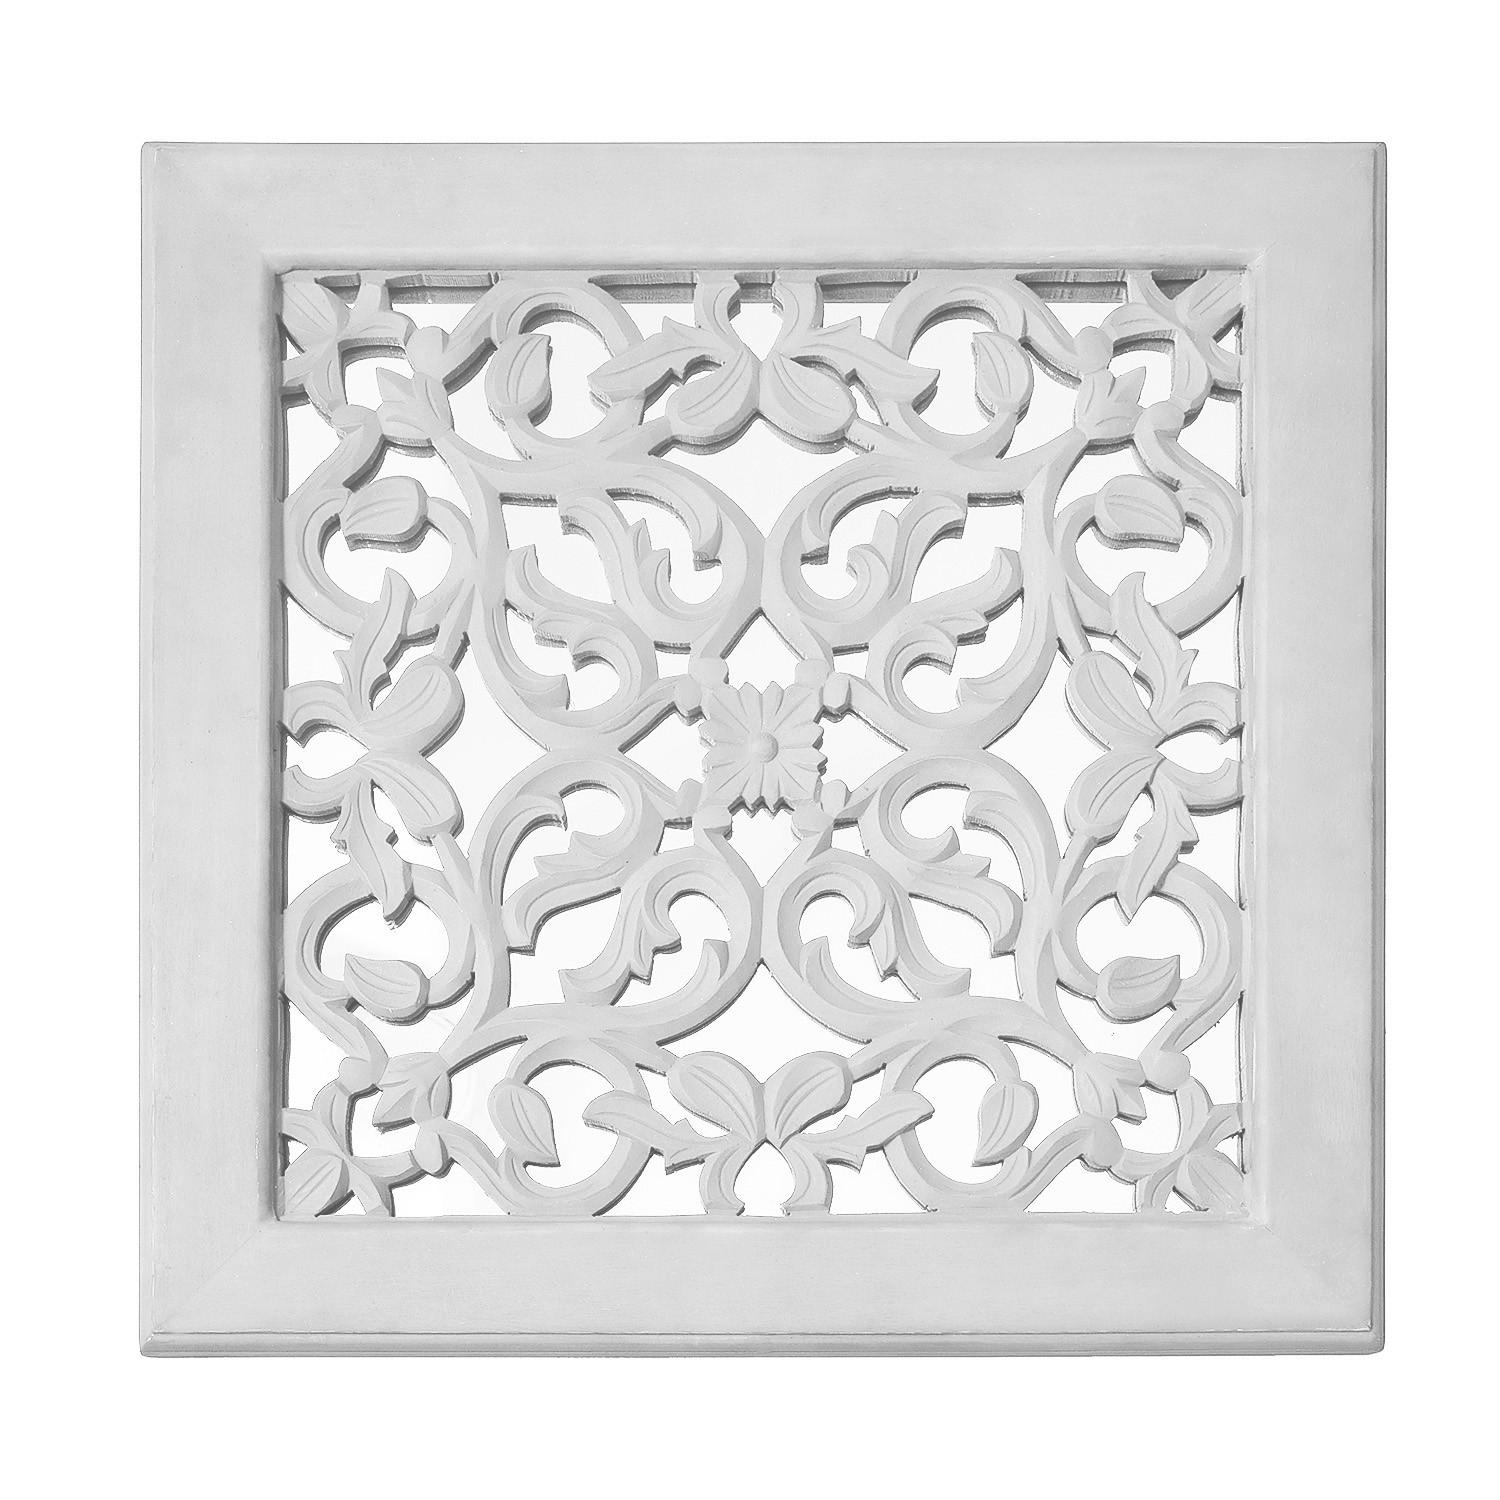 Fretwork Wall Art: White (Set Of 3) | The Yellow Door Store Intended For Fretwork Wall Art (View 8 of 20)